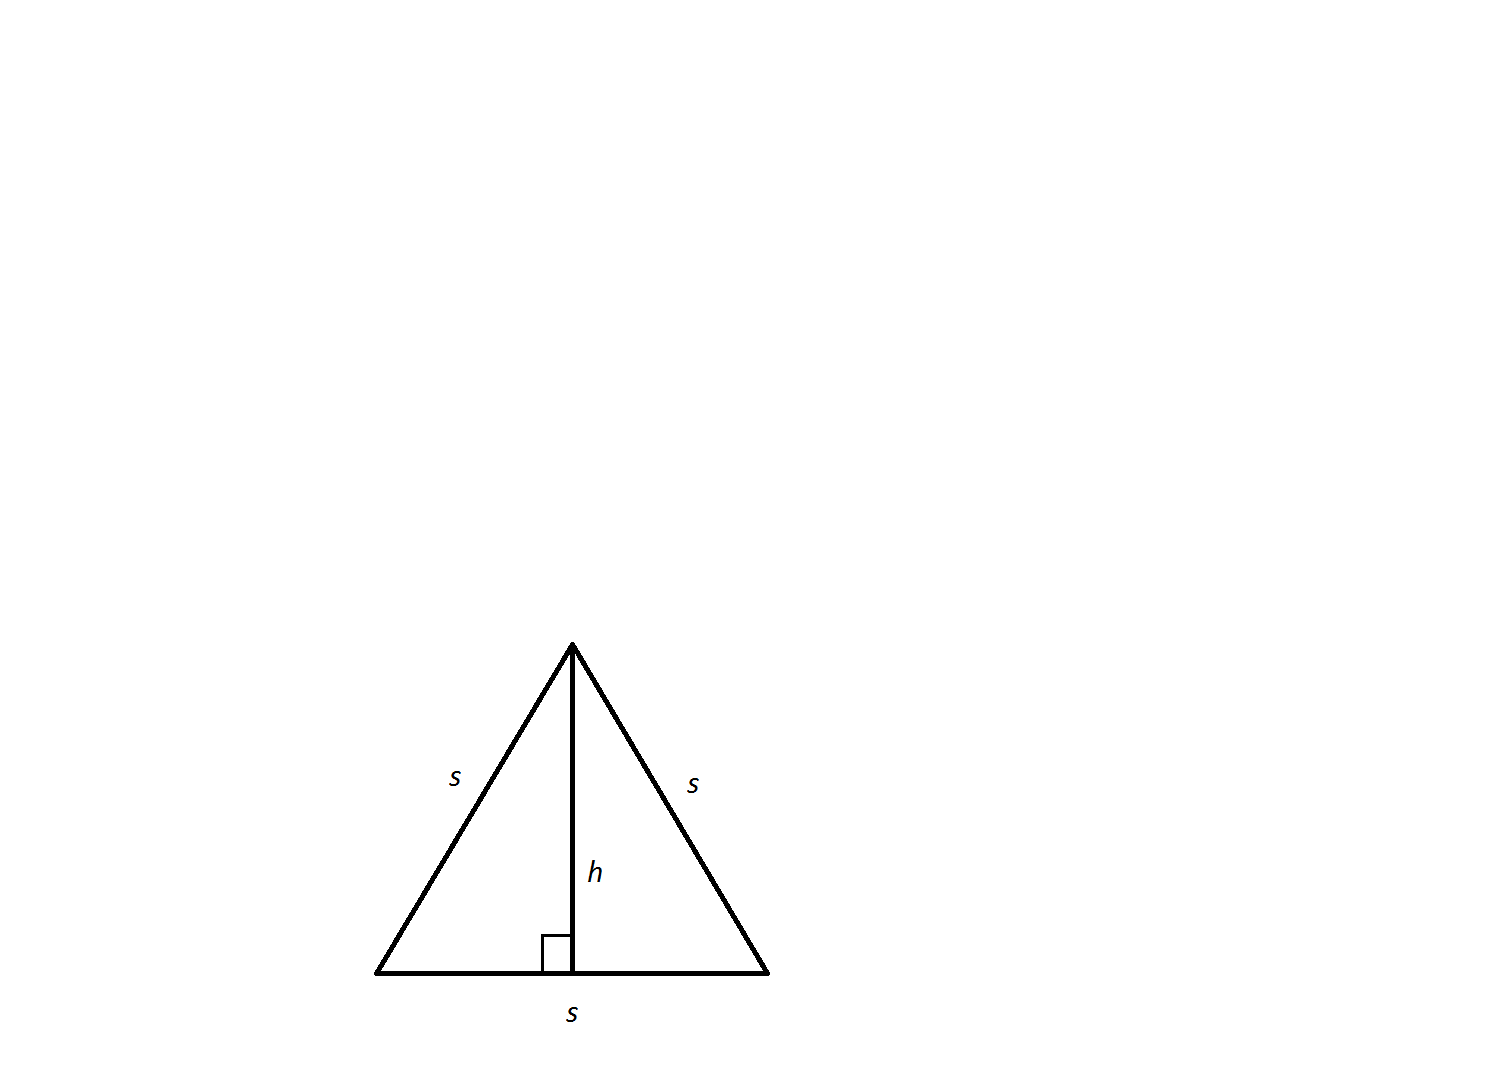 Example Question #6 : How To Find The Area Of An Equilateral Triangle